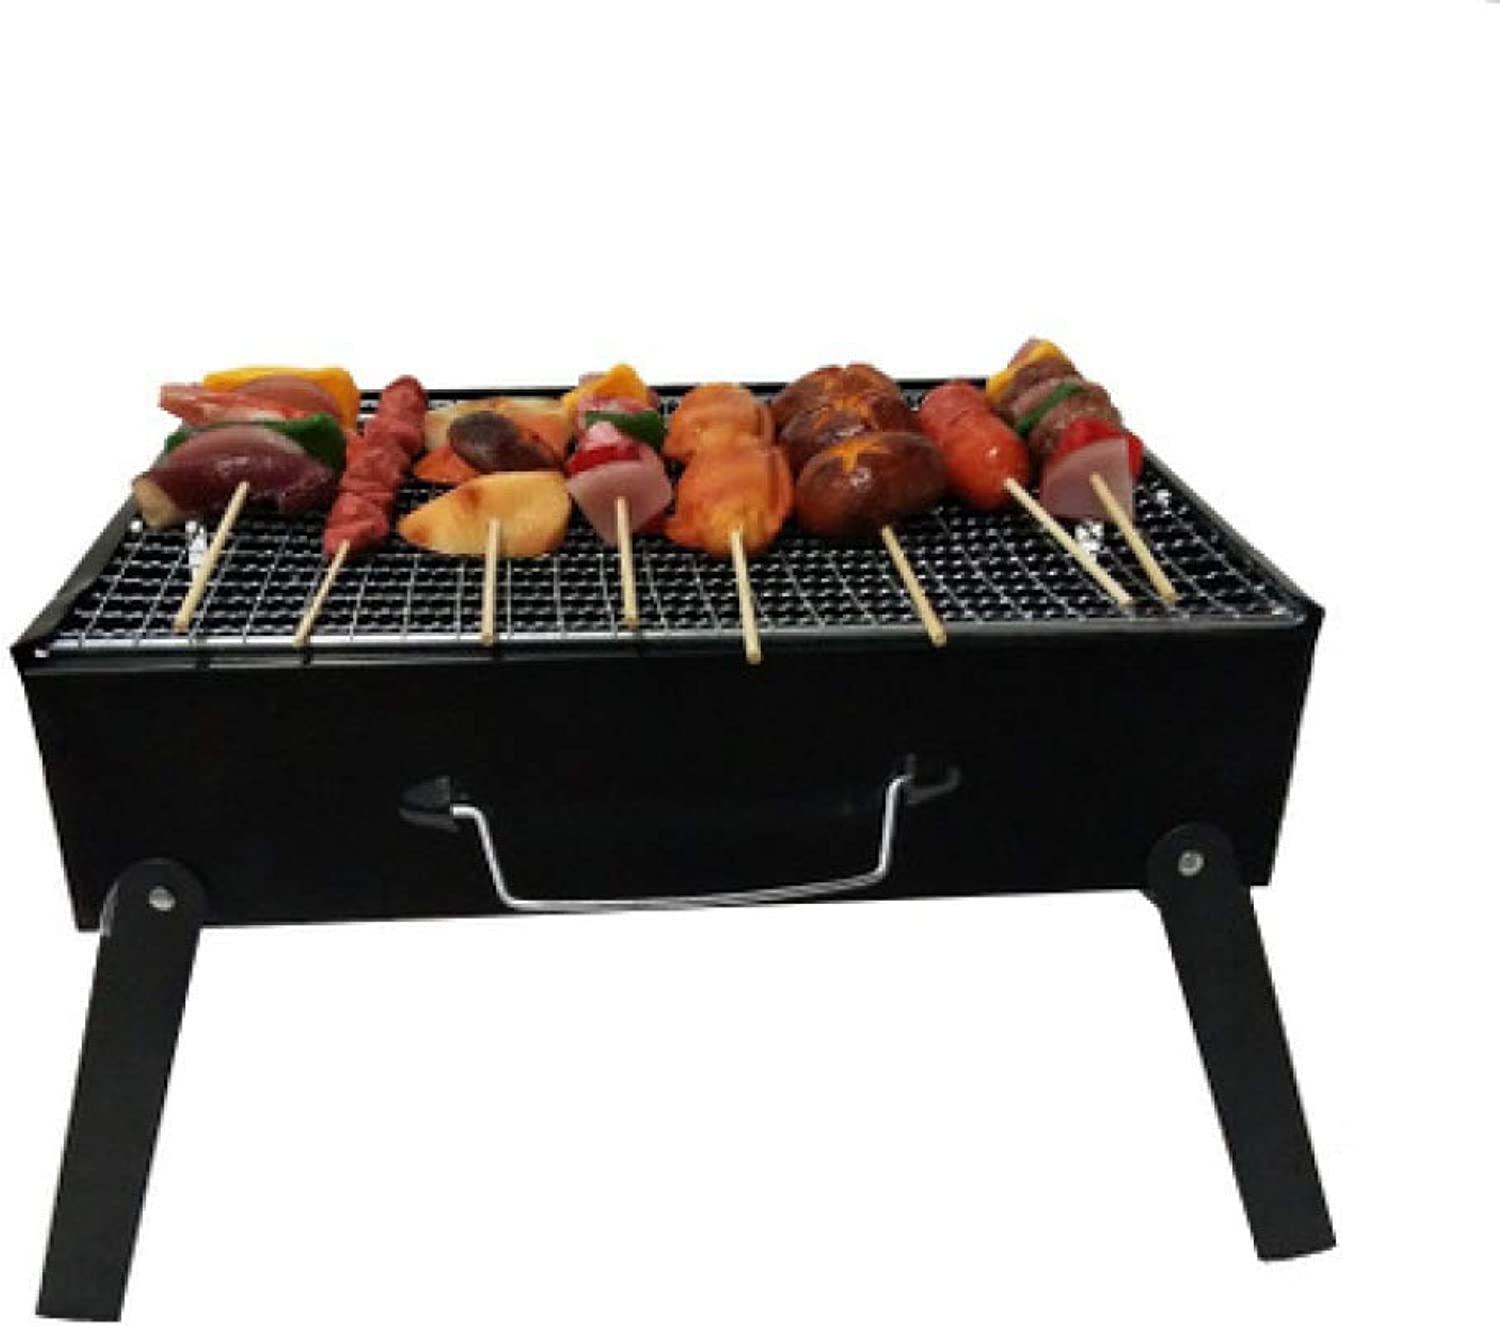 BBQ Supplies Barbecue Easy Barbecues Set Outdoor BBQ 3-4 Charcoal Grill Foldable Grill Portable Square Grill